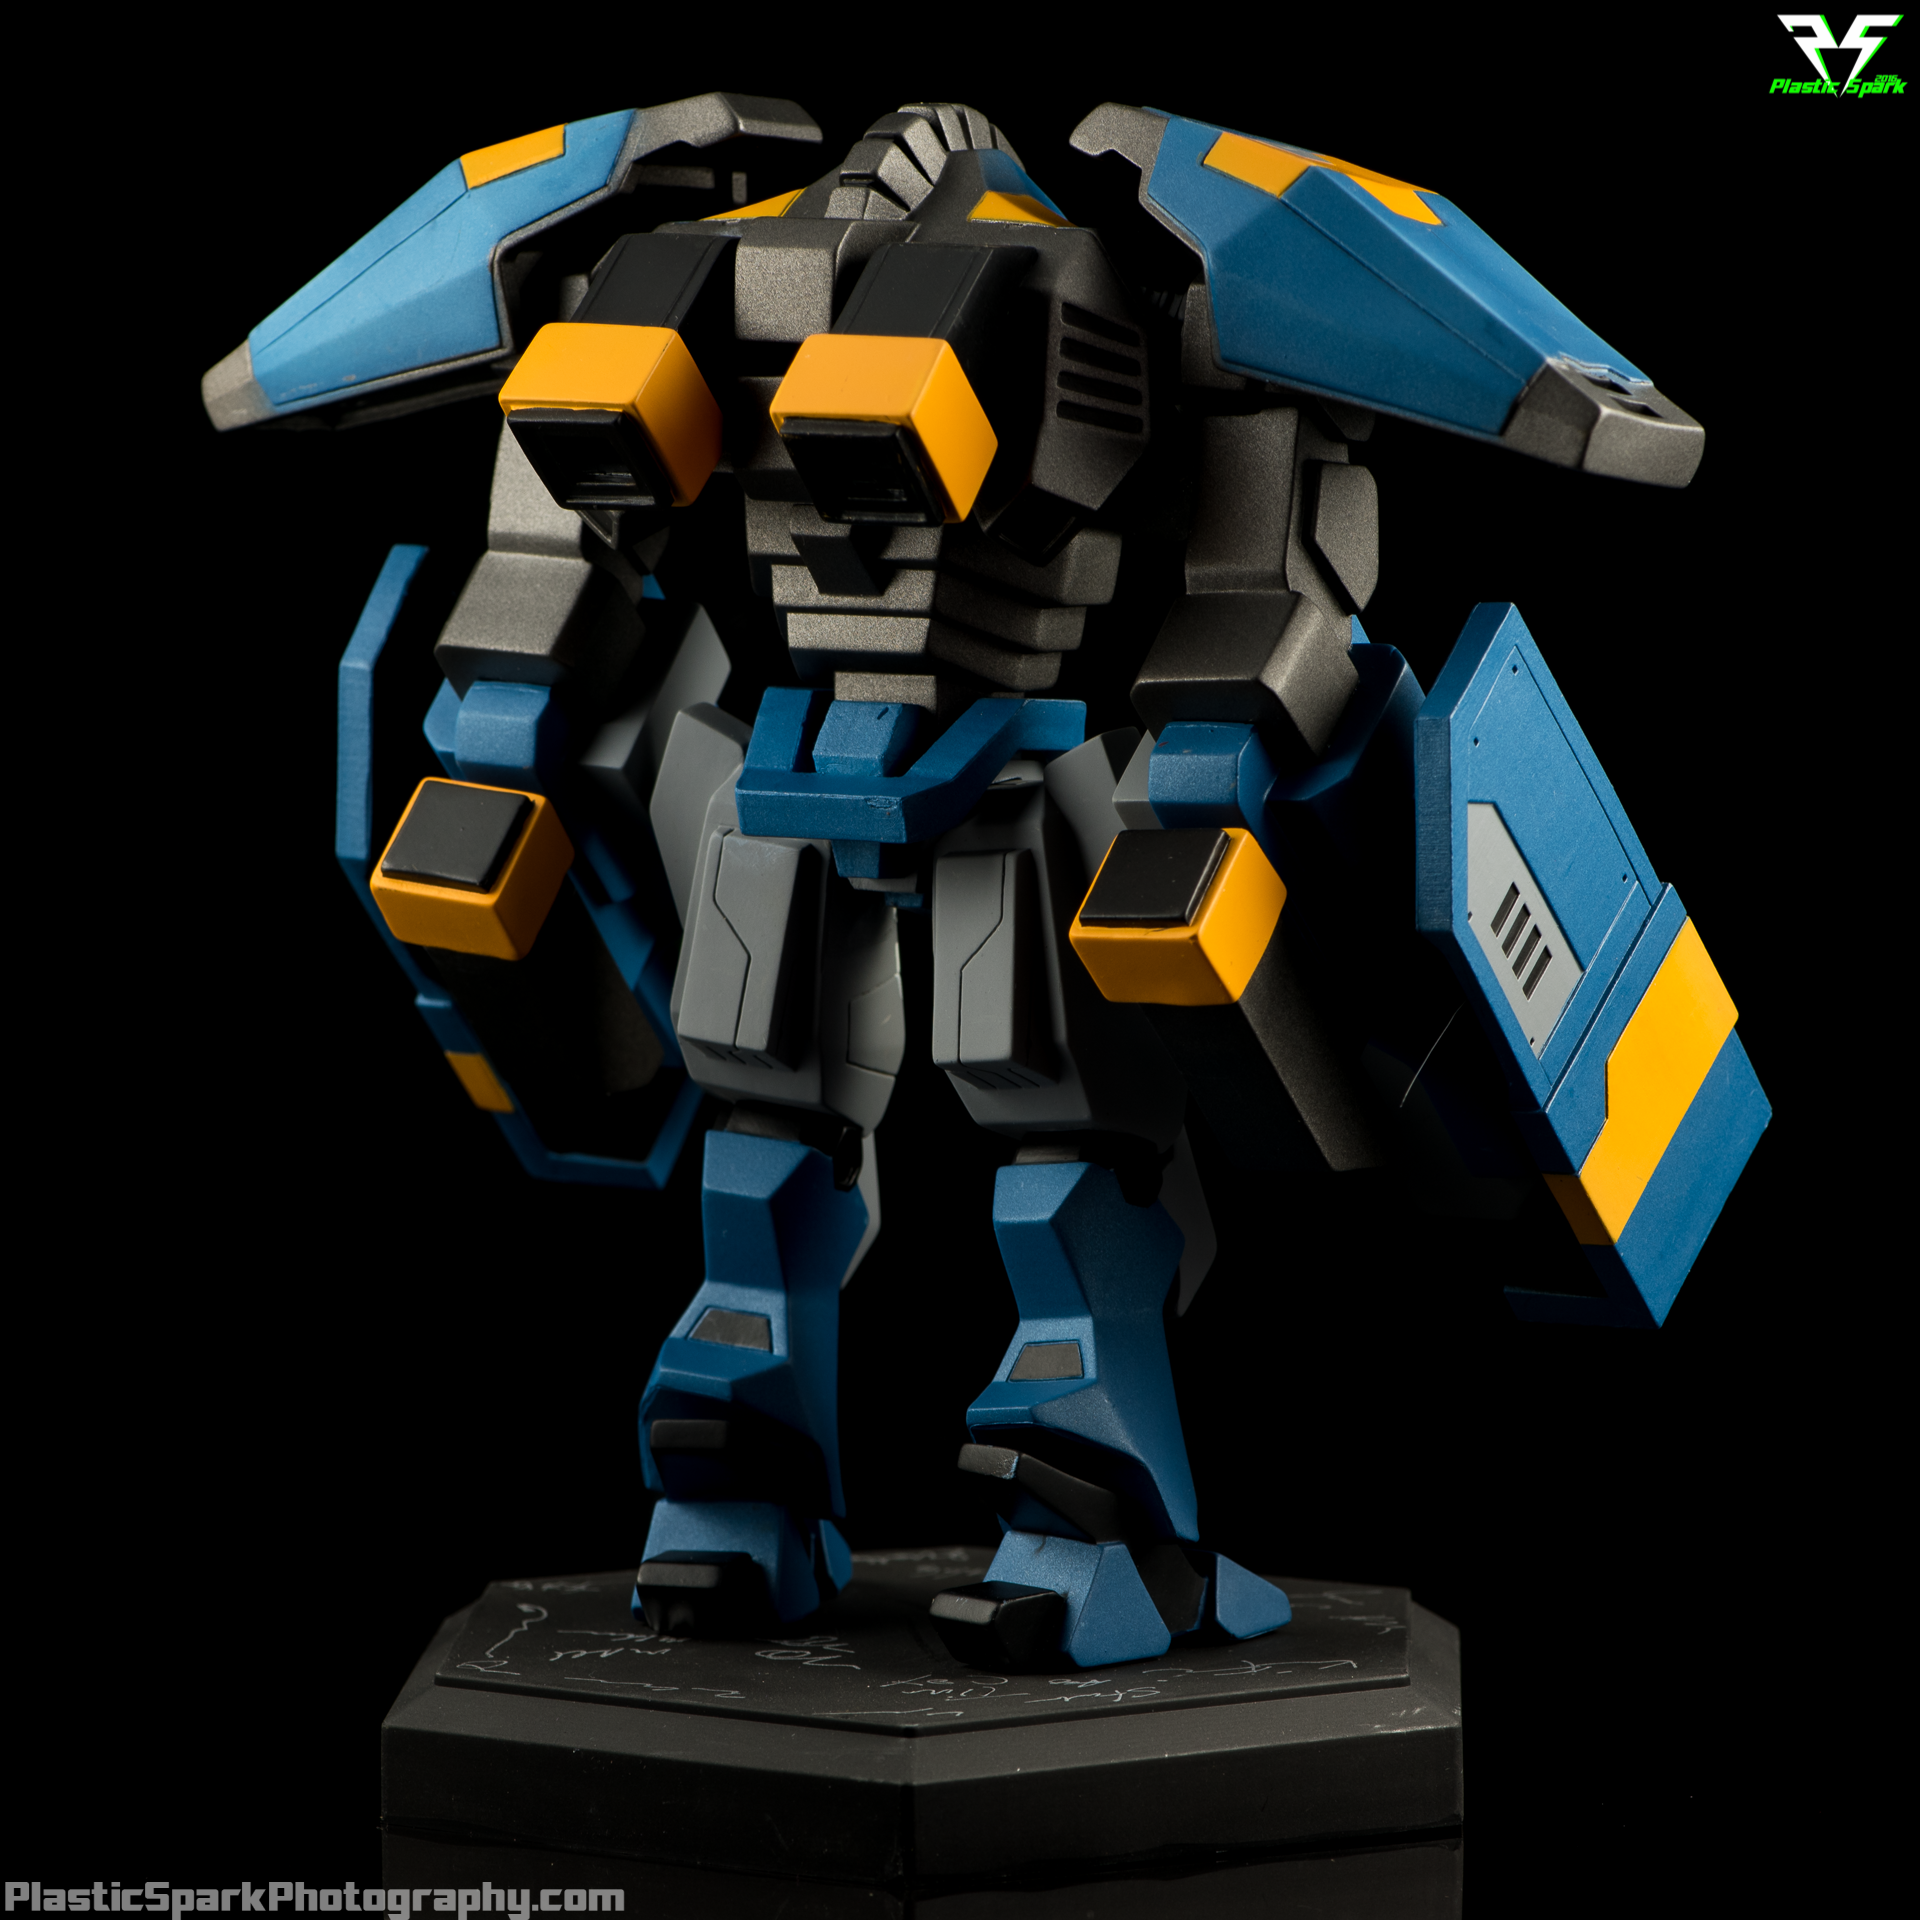 Planetary-Annihilation-Invictus-Statue-(3-of-10).png